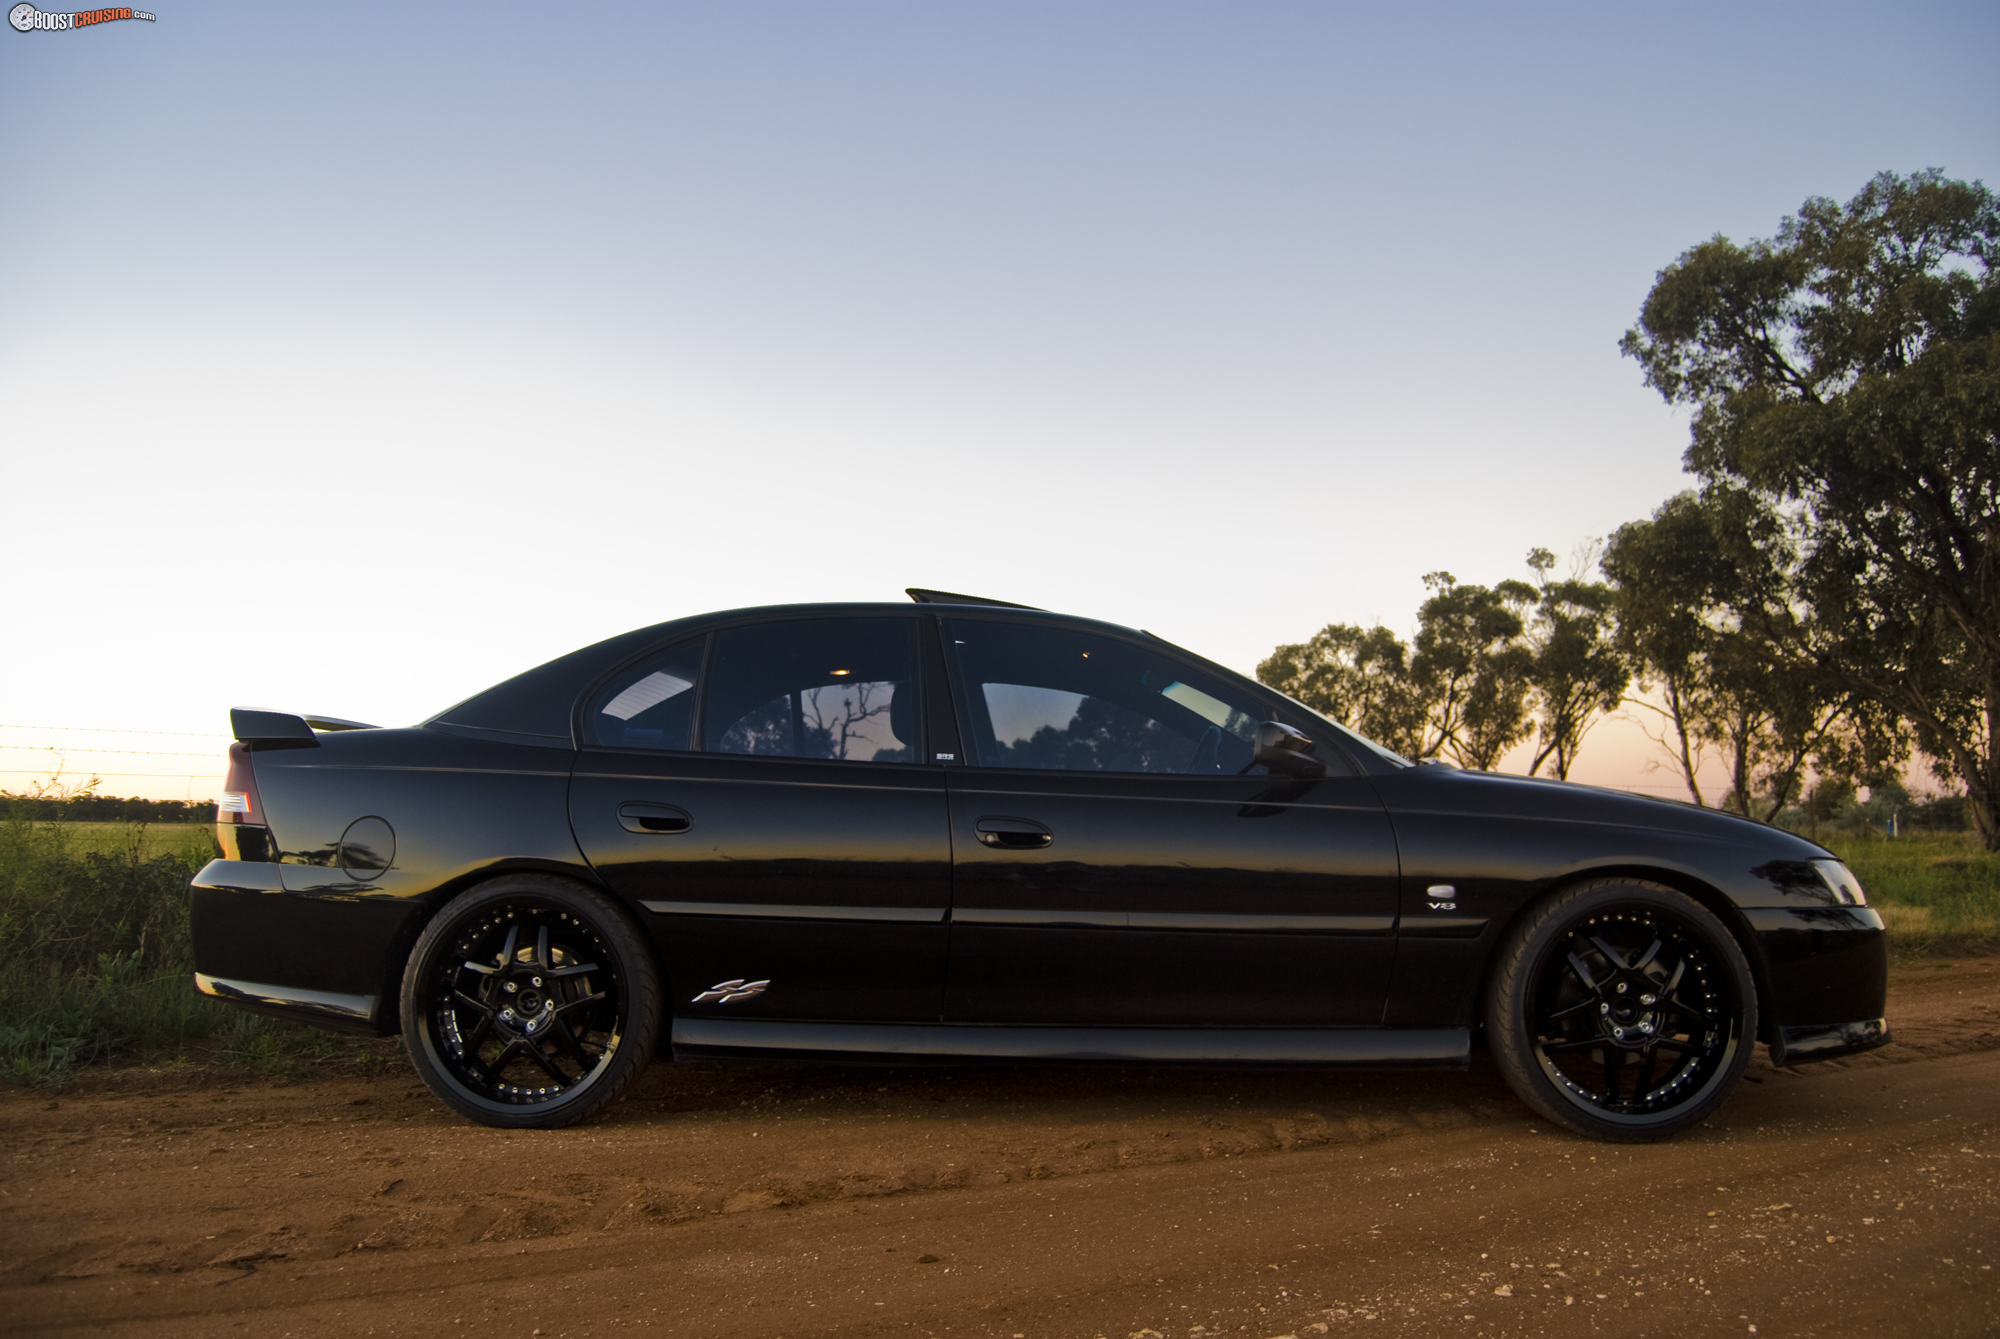 2004 holden commodore vy ss series 2 6spd boostcruising mercedes audio 20 owner's manual mercedes audio 20 owner's manual